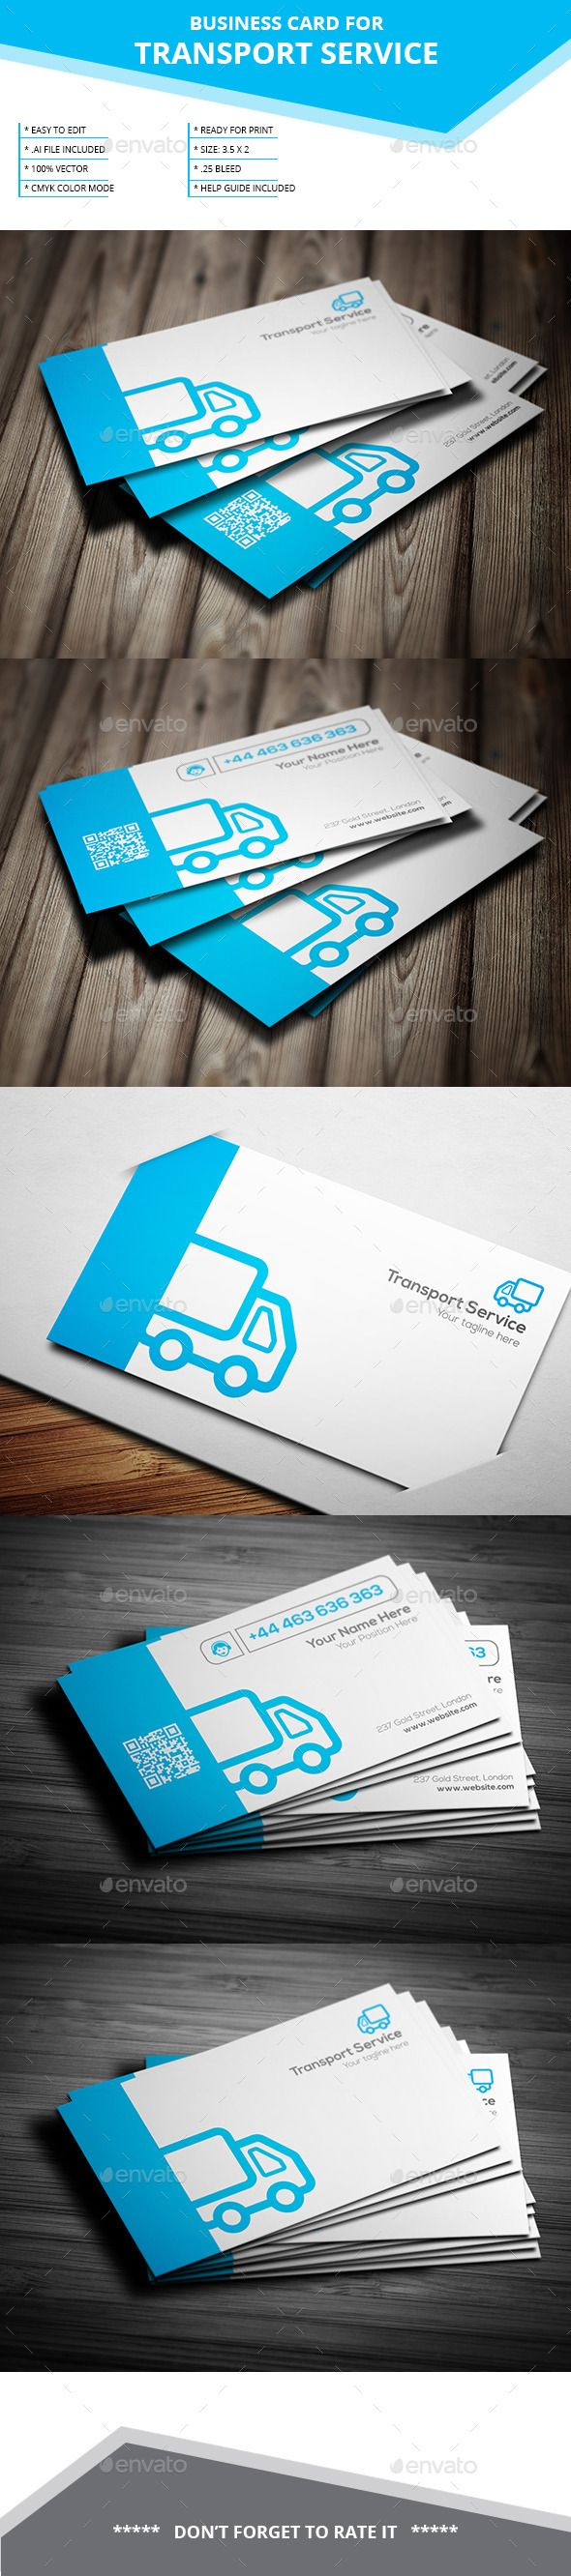 20 best creative business card designs images on pinterest transport service business card reheart Choice Image